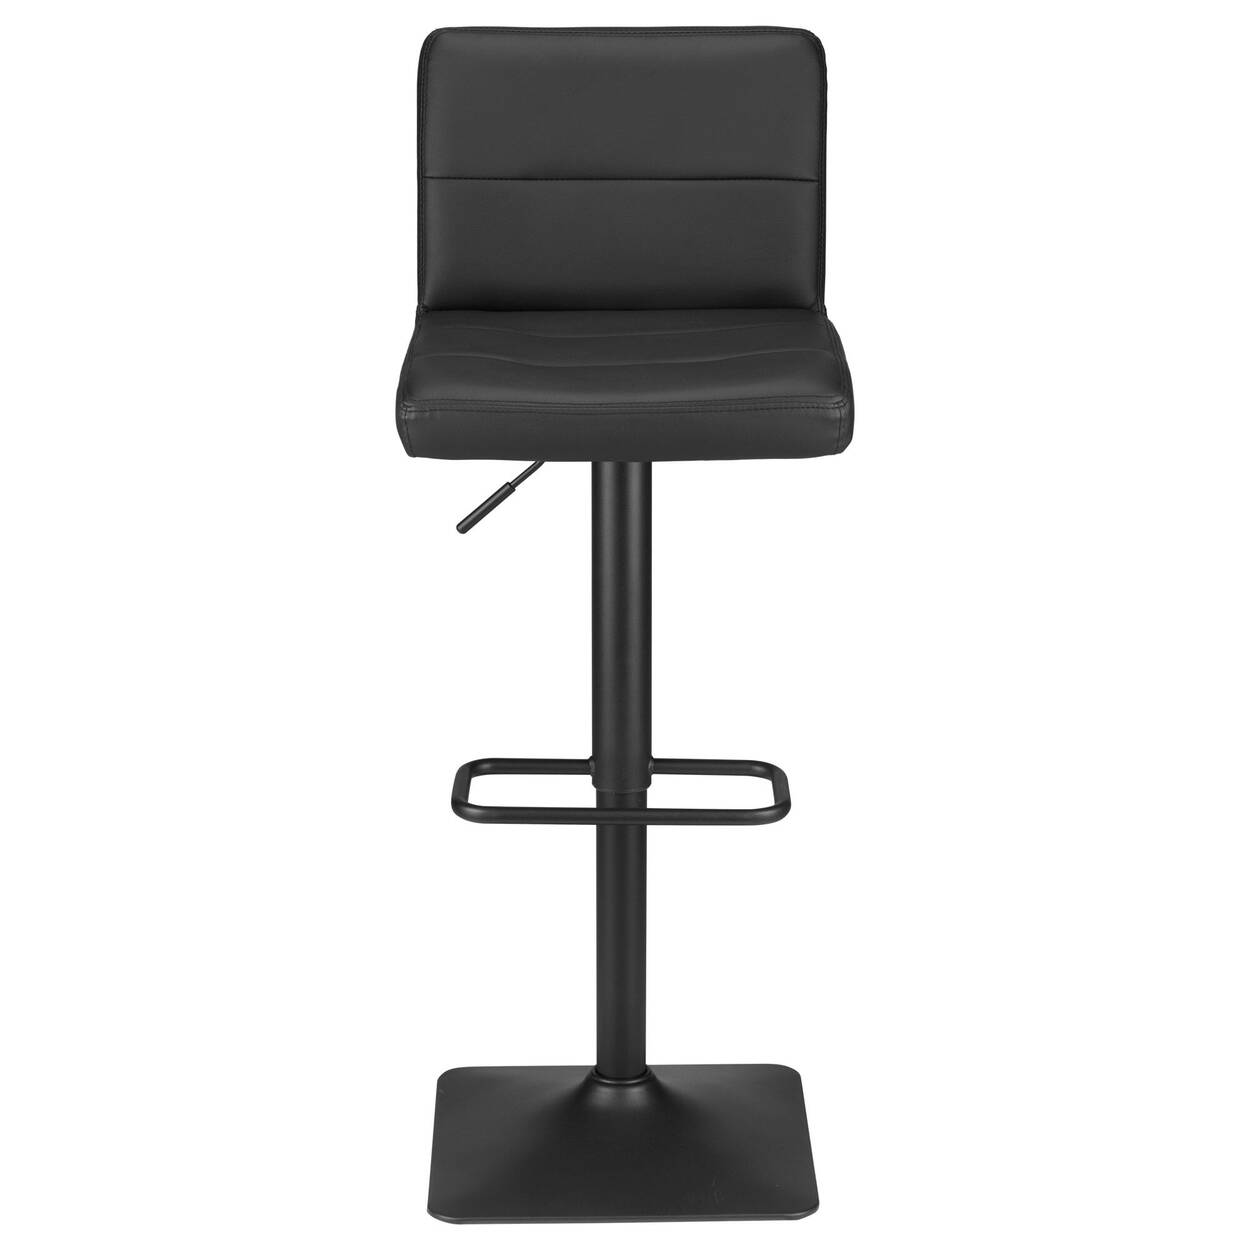 Pleasant Matte Faux Leather And Metal Adjustable Bar Stool Short Links Chair Design For Home Short Linksinfo